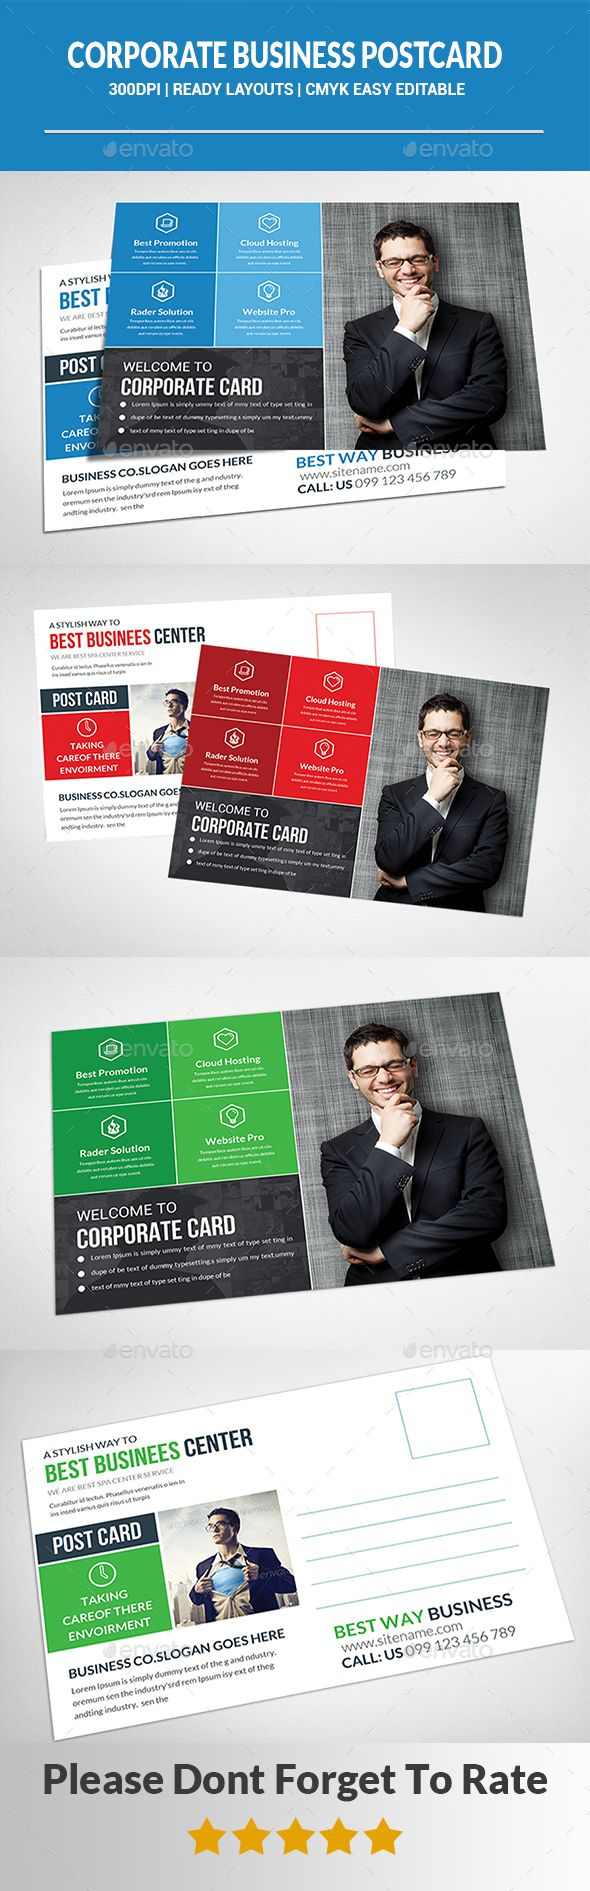 Corporate business postcard template business postcards postcard buy corporate business postcard template by afjamaal on graphicriver this postcard is made in photoshop the files included are help file and photosh cheaphphosting Image collections